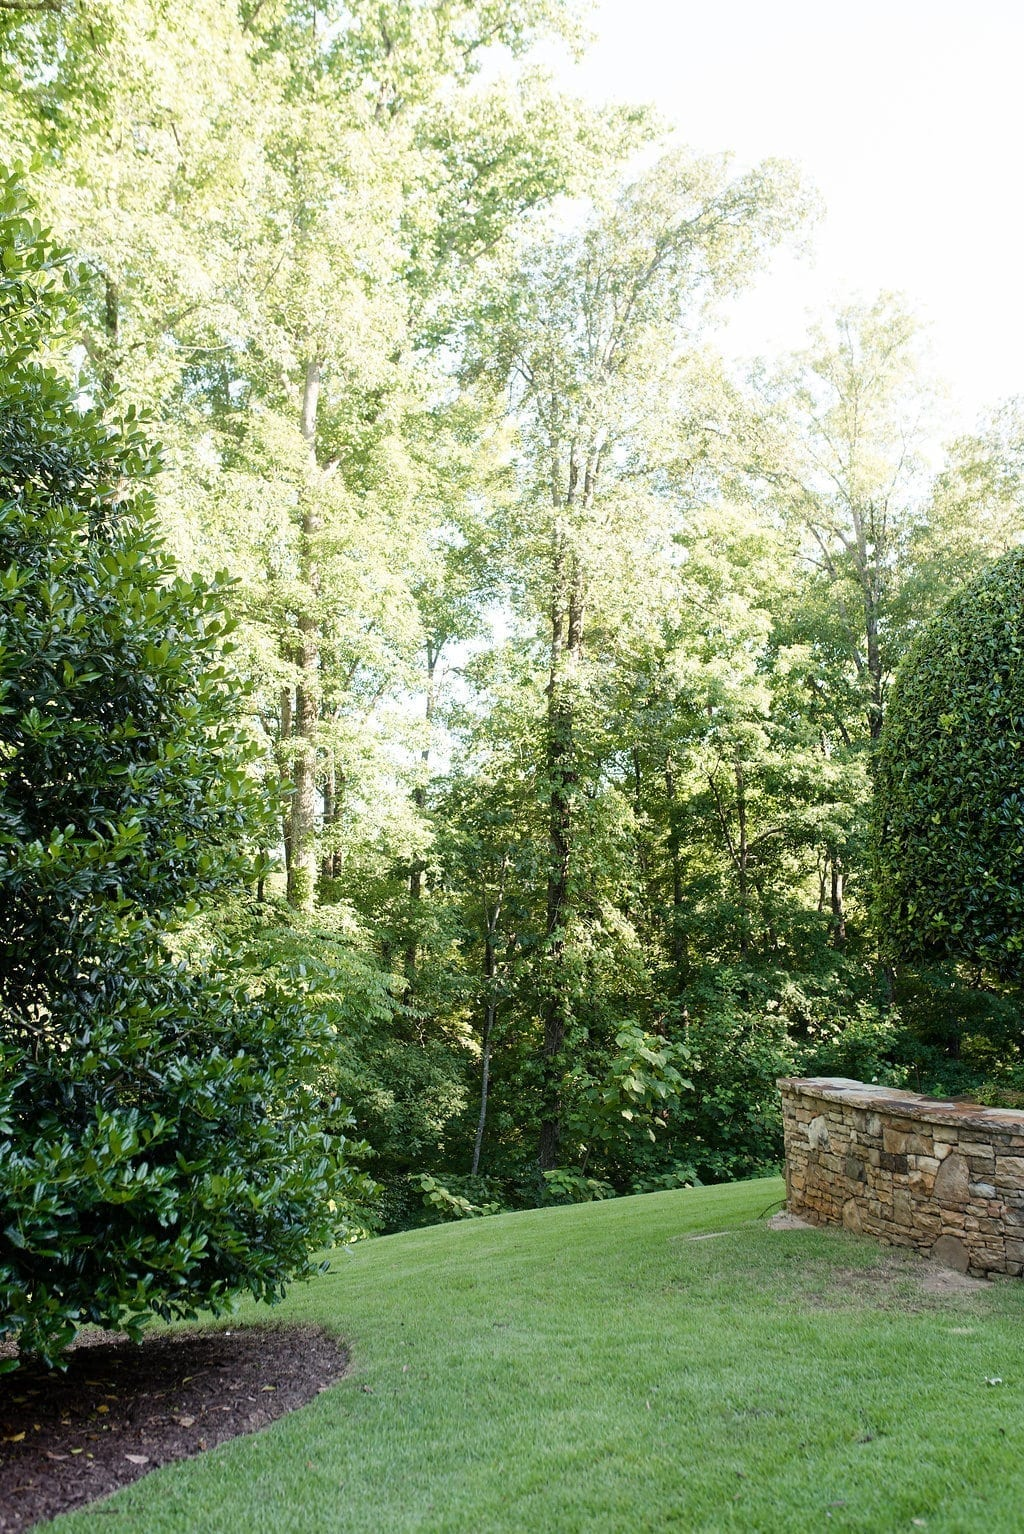 Atlanta landscape ideas in Georgia homes.